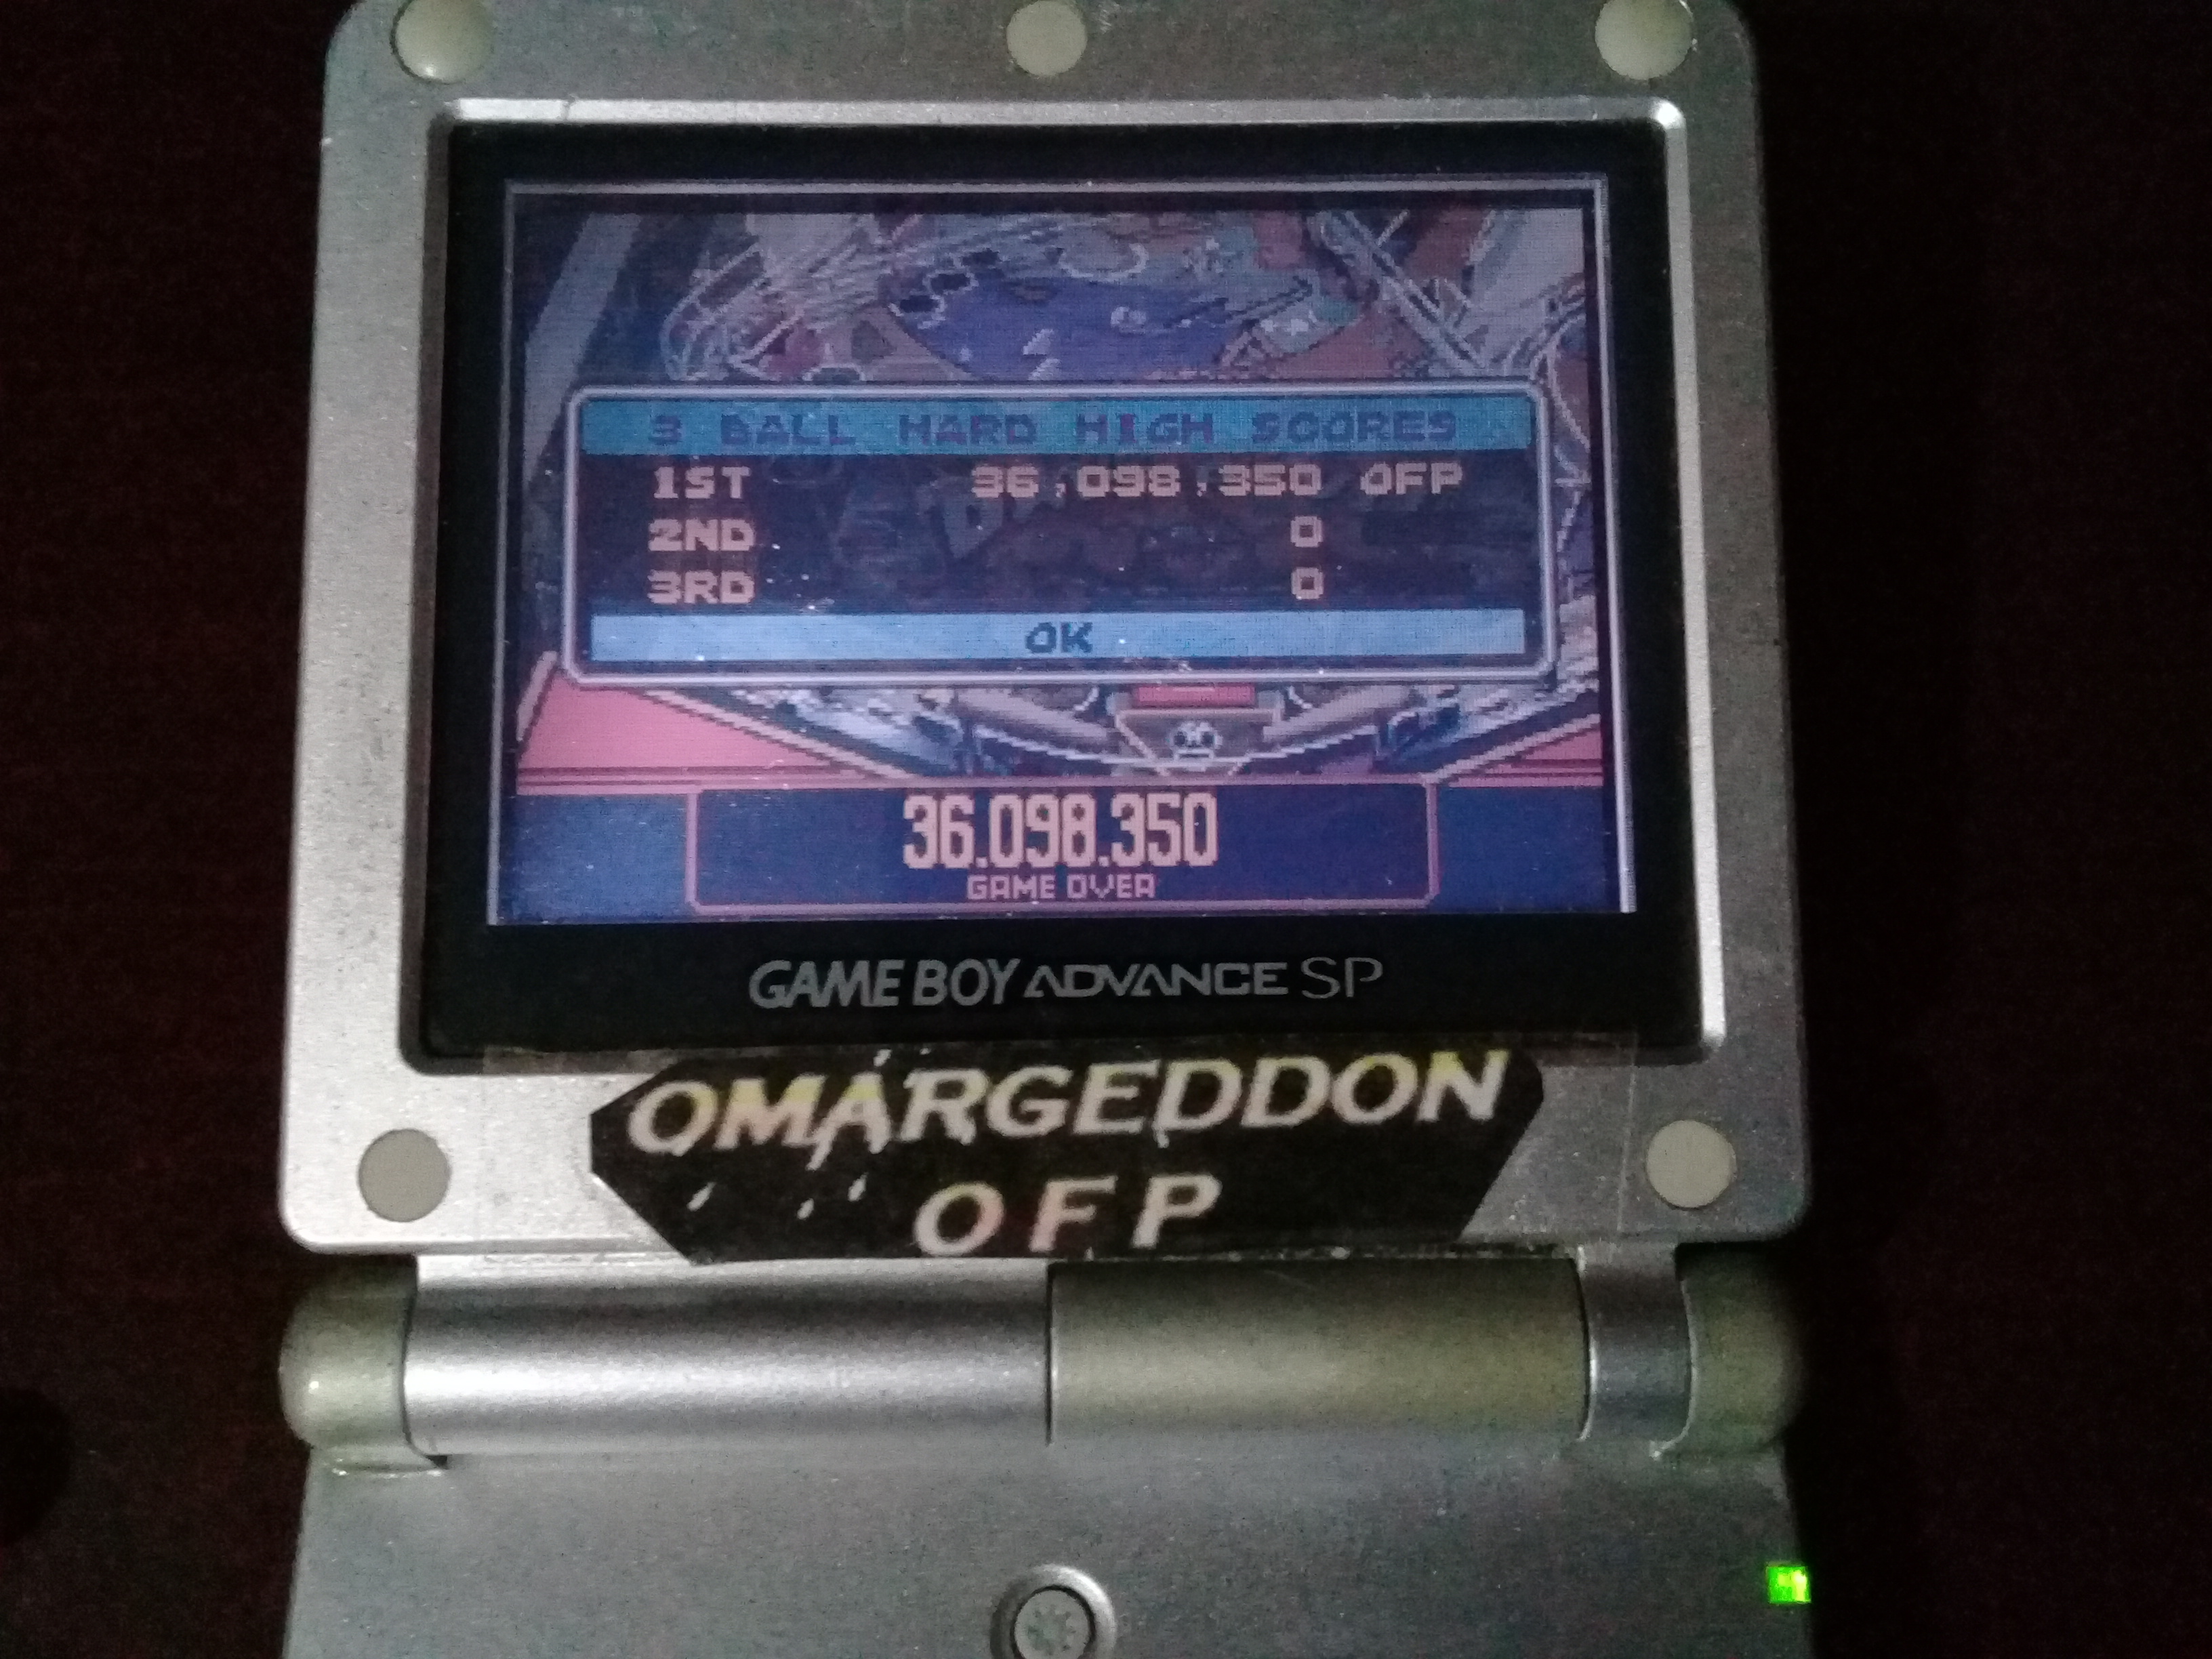 omargeddon: Pinball Advance: Dare Devil [3 Balls] [Hard] (GBA) 36,098,350 points on 2019-09-15 11:22:38